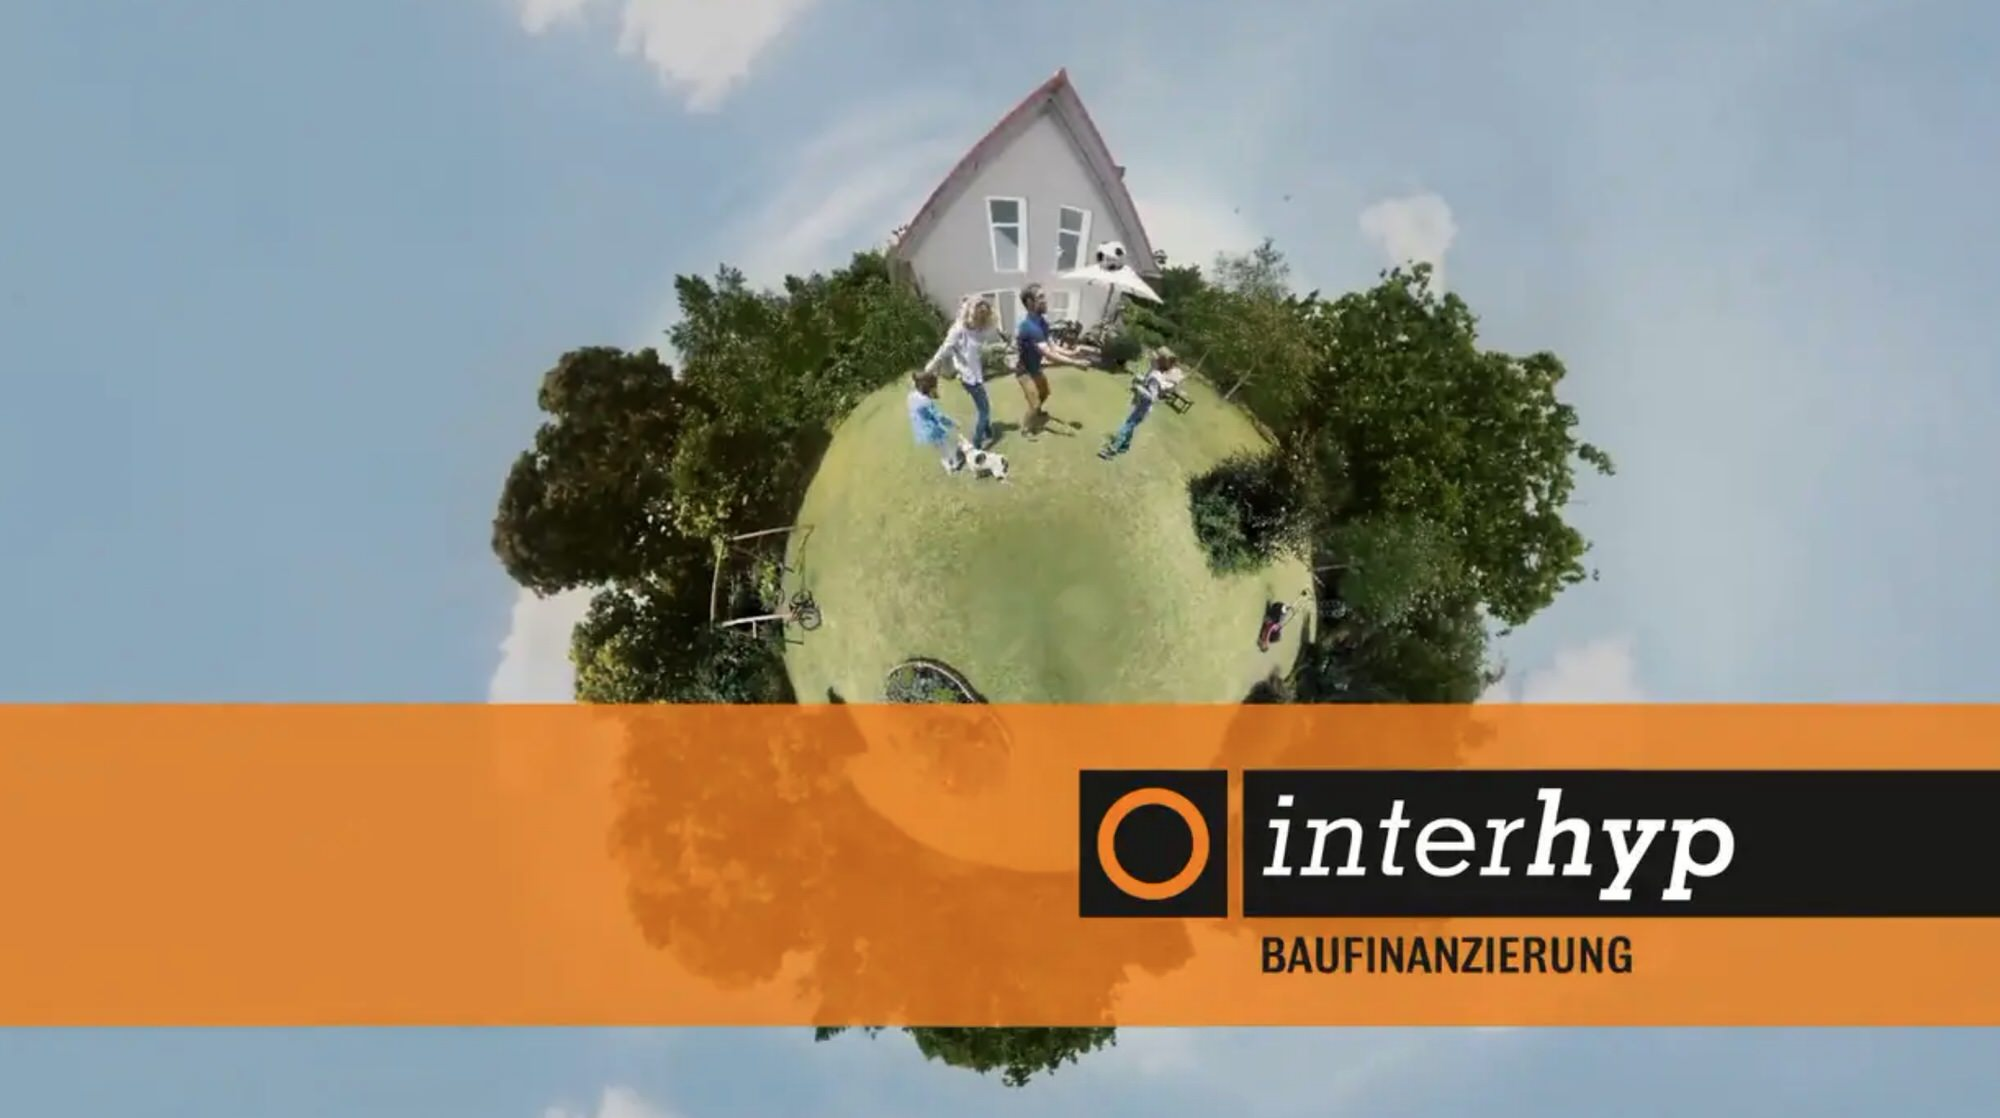 Interhyp - 360° Video